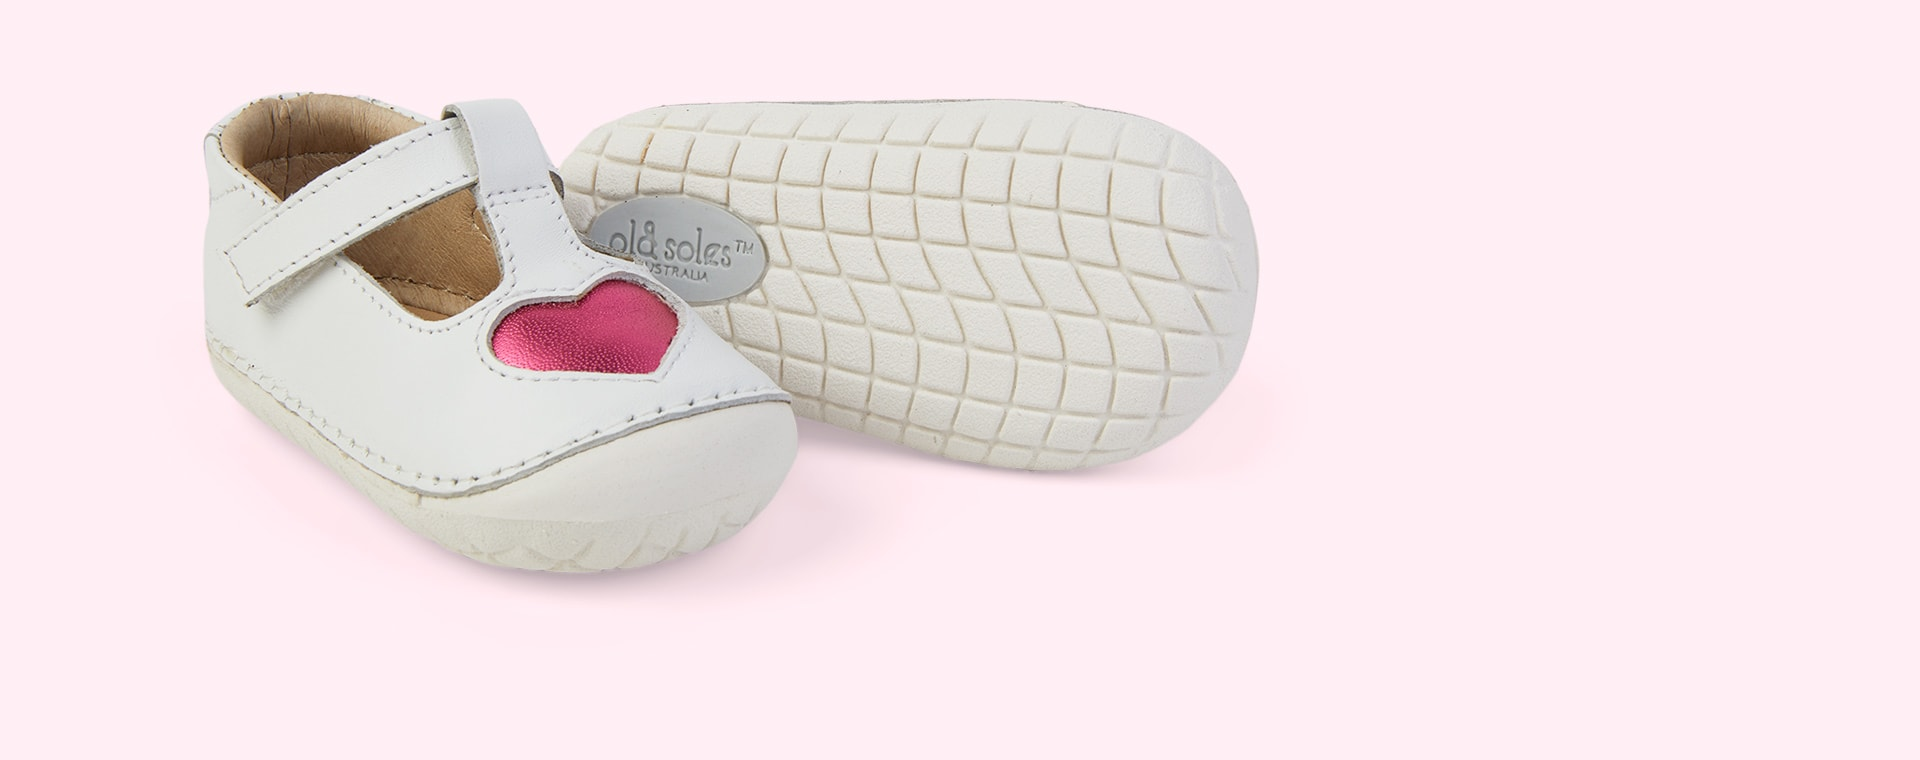 Snow/ Fuchsia old soles Pave Love